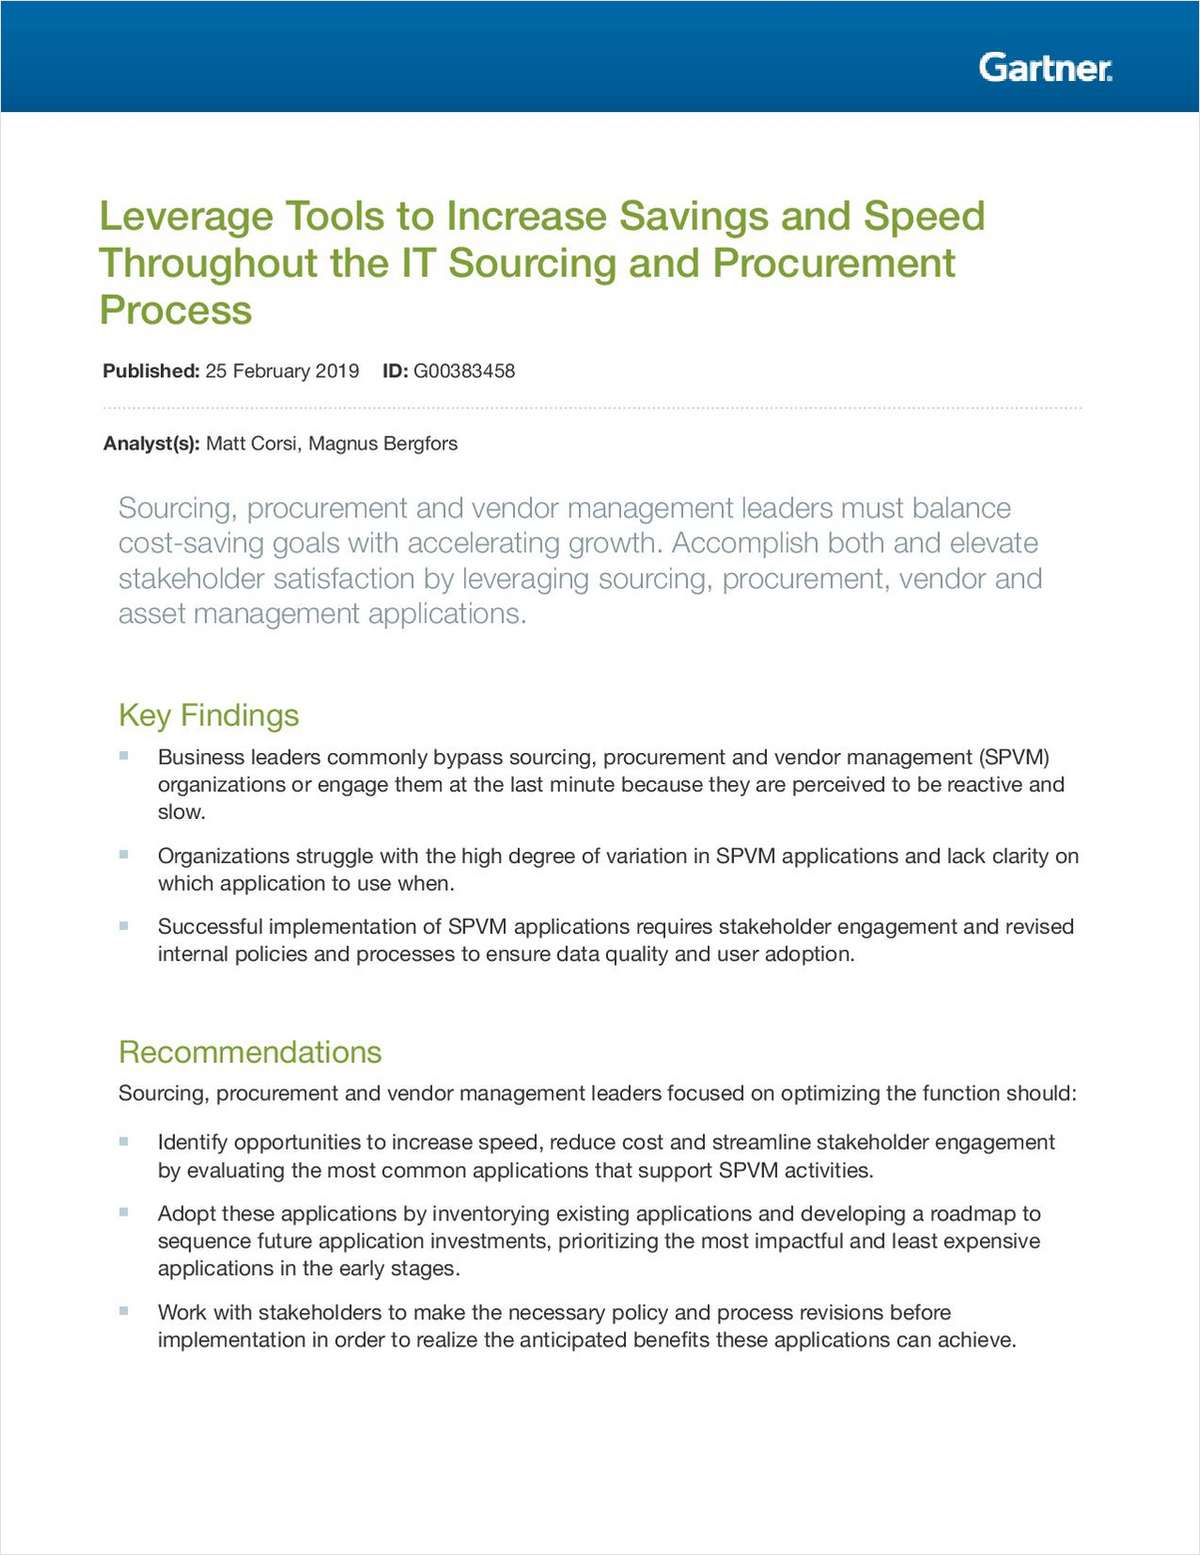 Leverage Tools to Increase Savings and Speed throughout the